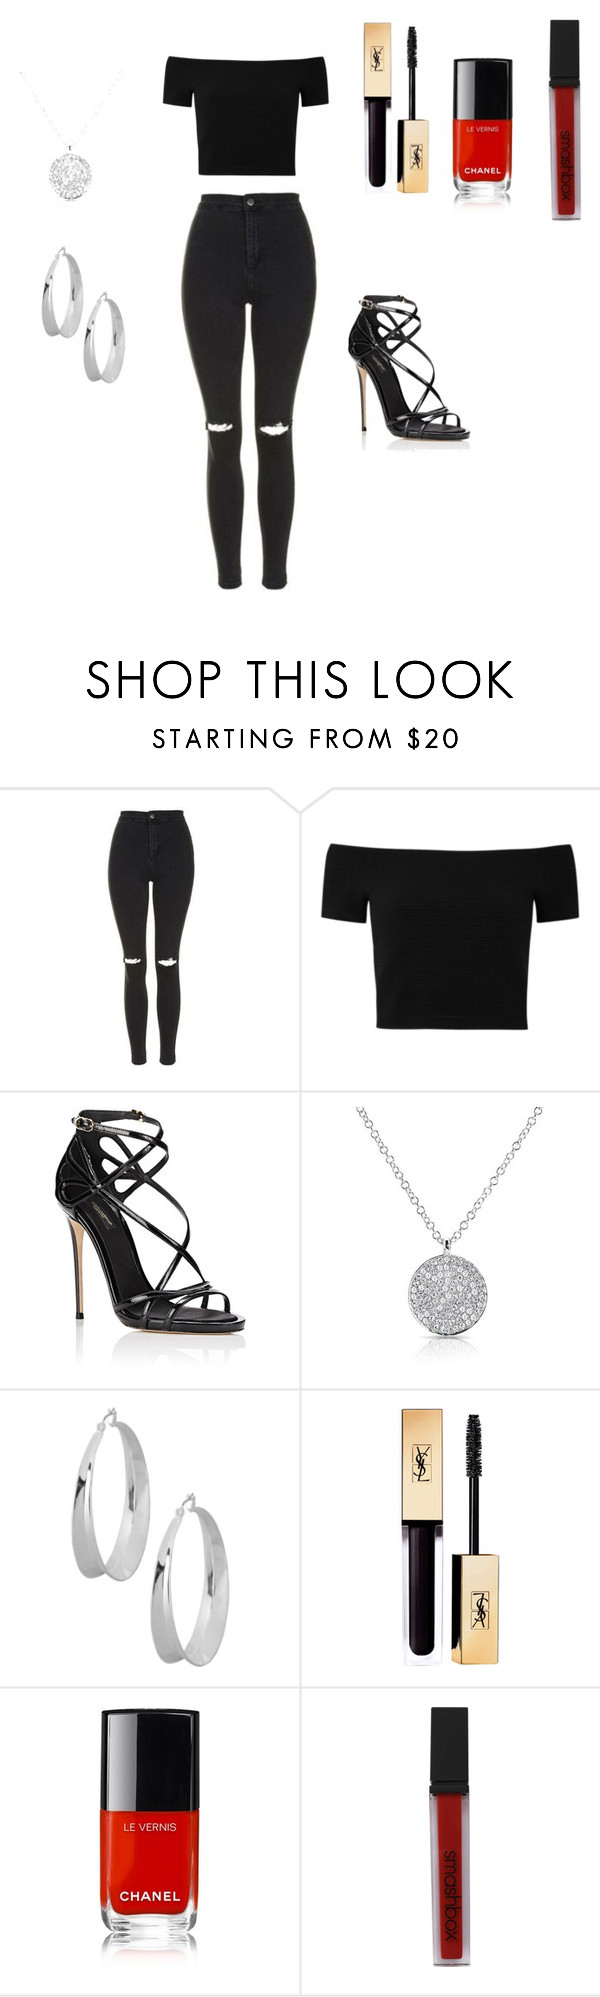 """clubbing"" by savannah-elise-beerman on Polyvore featuring Topshop, Alice + Olivia, Dolce&Gabbana, Robert Lee Morris, Chanel and Smashbox"